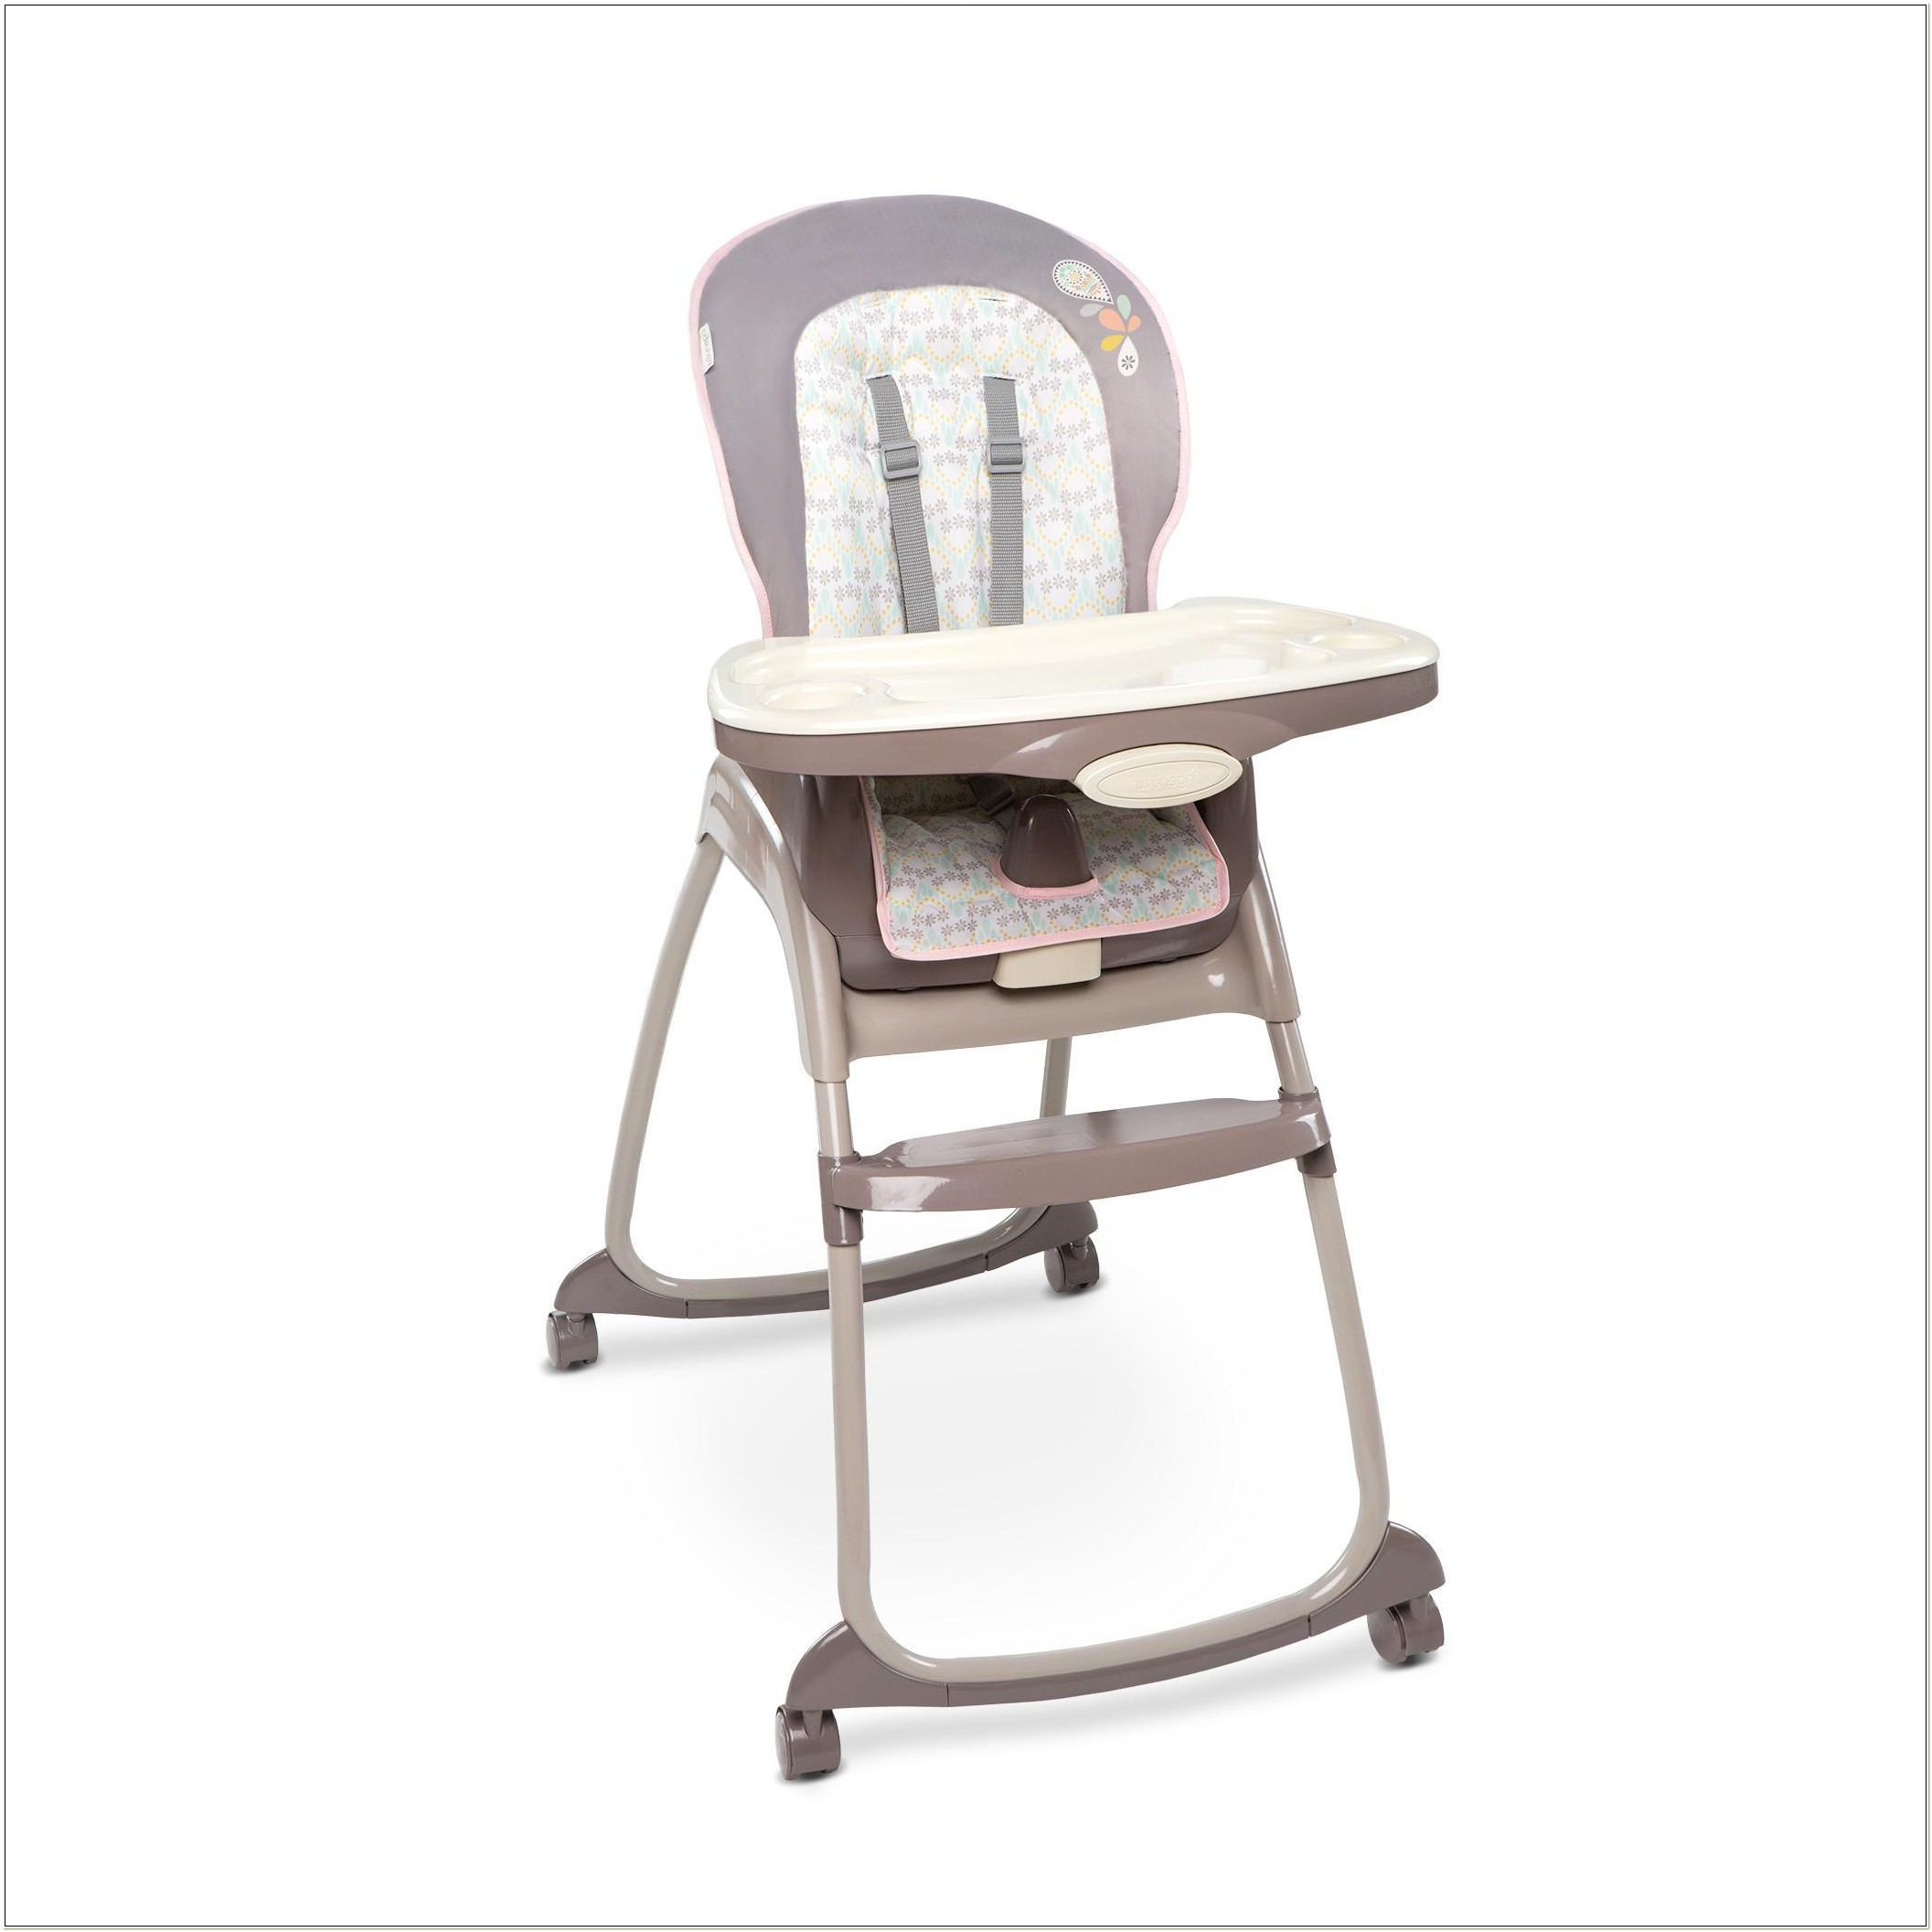 Booster Seat High Chair Target